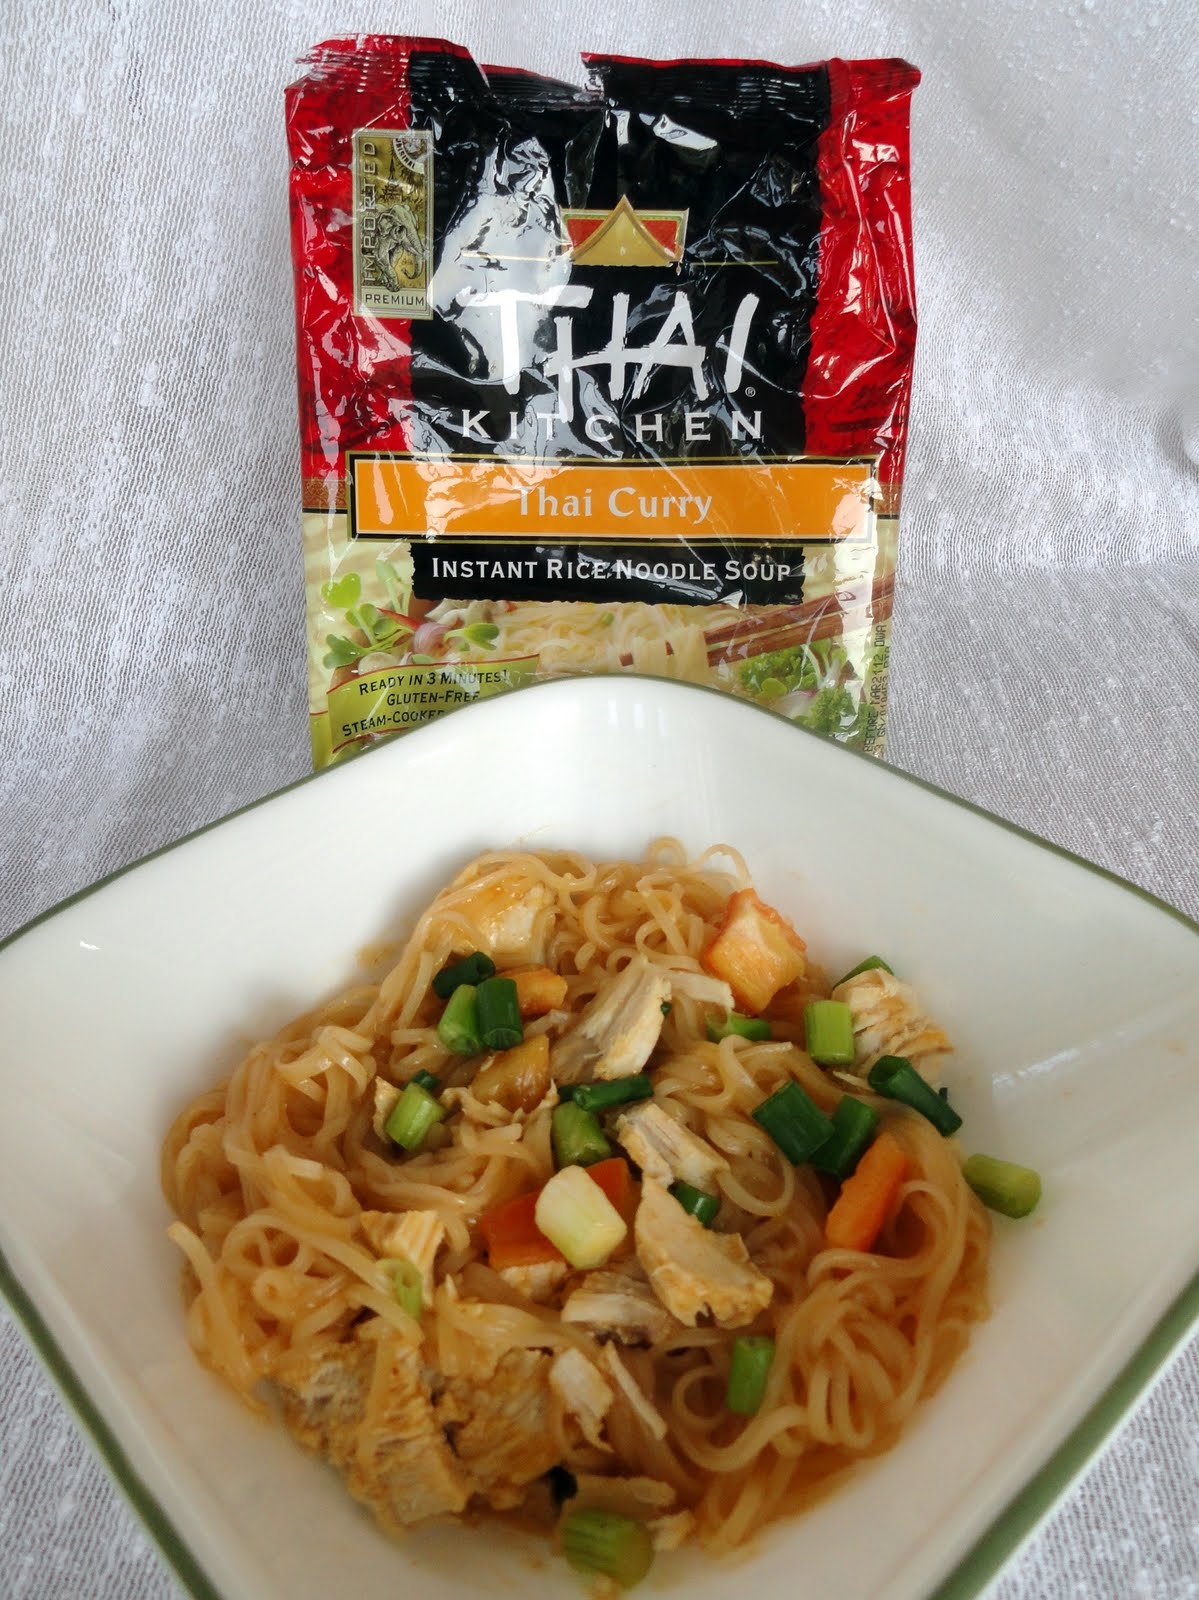 As Good As Gluten My Pantry Thai Kitchen 39 S Thai Curry Instant Rice Noodle Soup